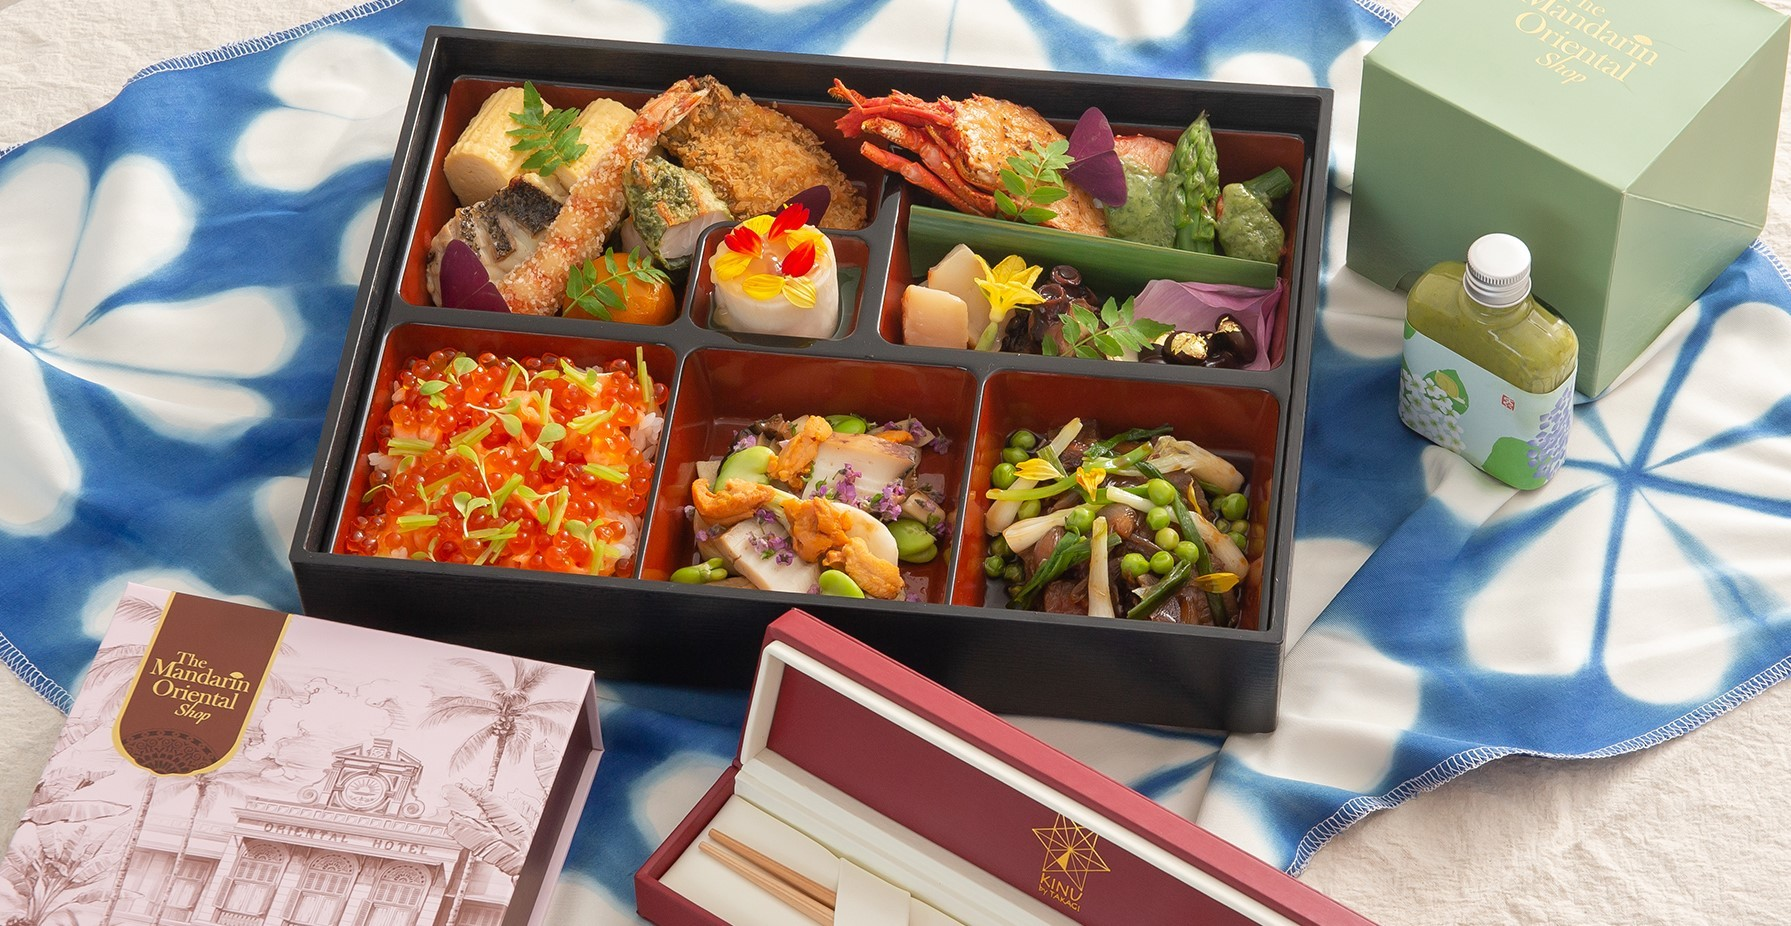 In pictures: Take a look at what could possibly be the fanciest Japanese bento in Bangkok